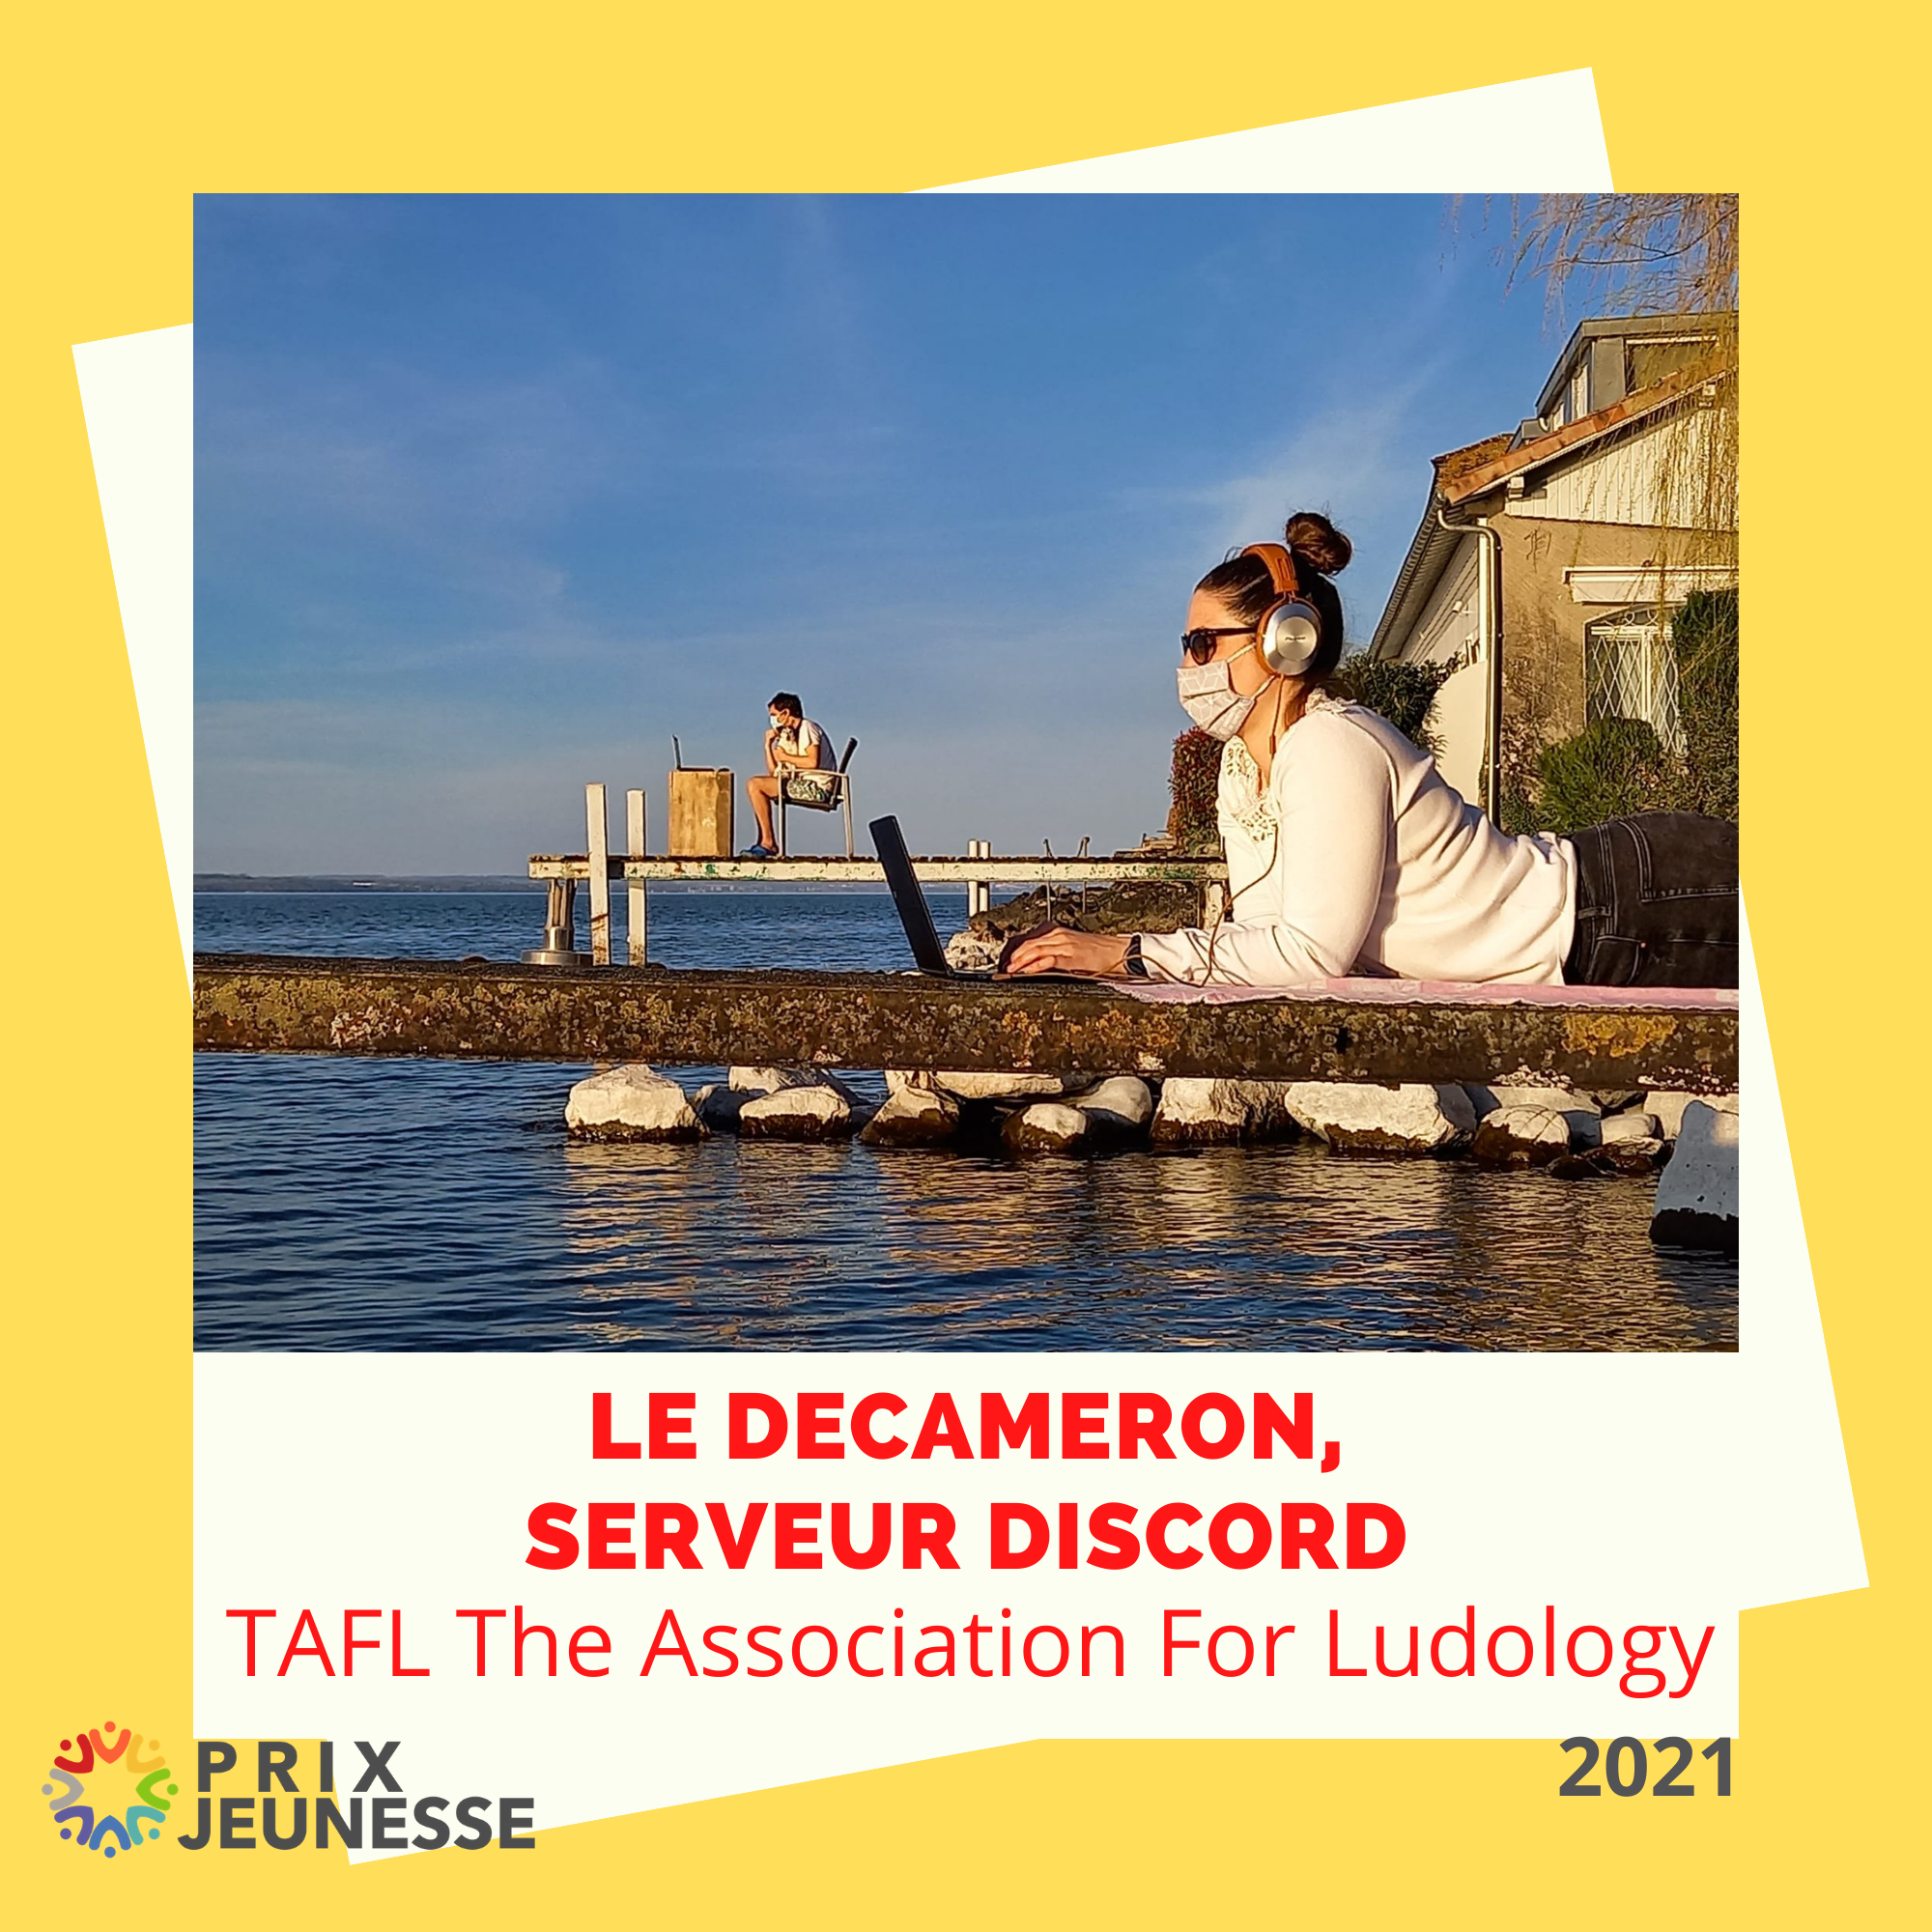 Candidat  Le Decameron, serveur discord - TAFL The Association For Ludology